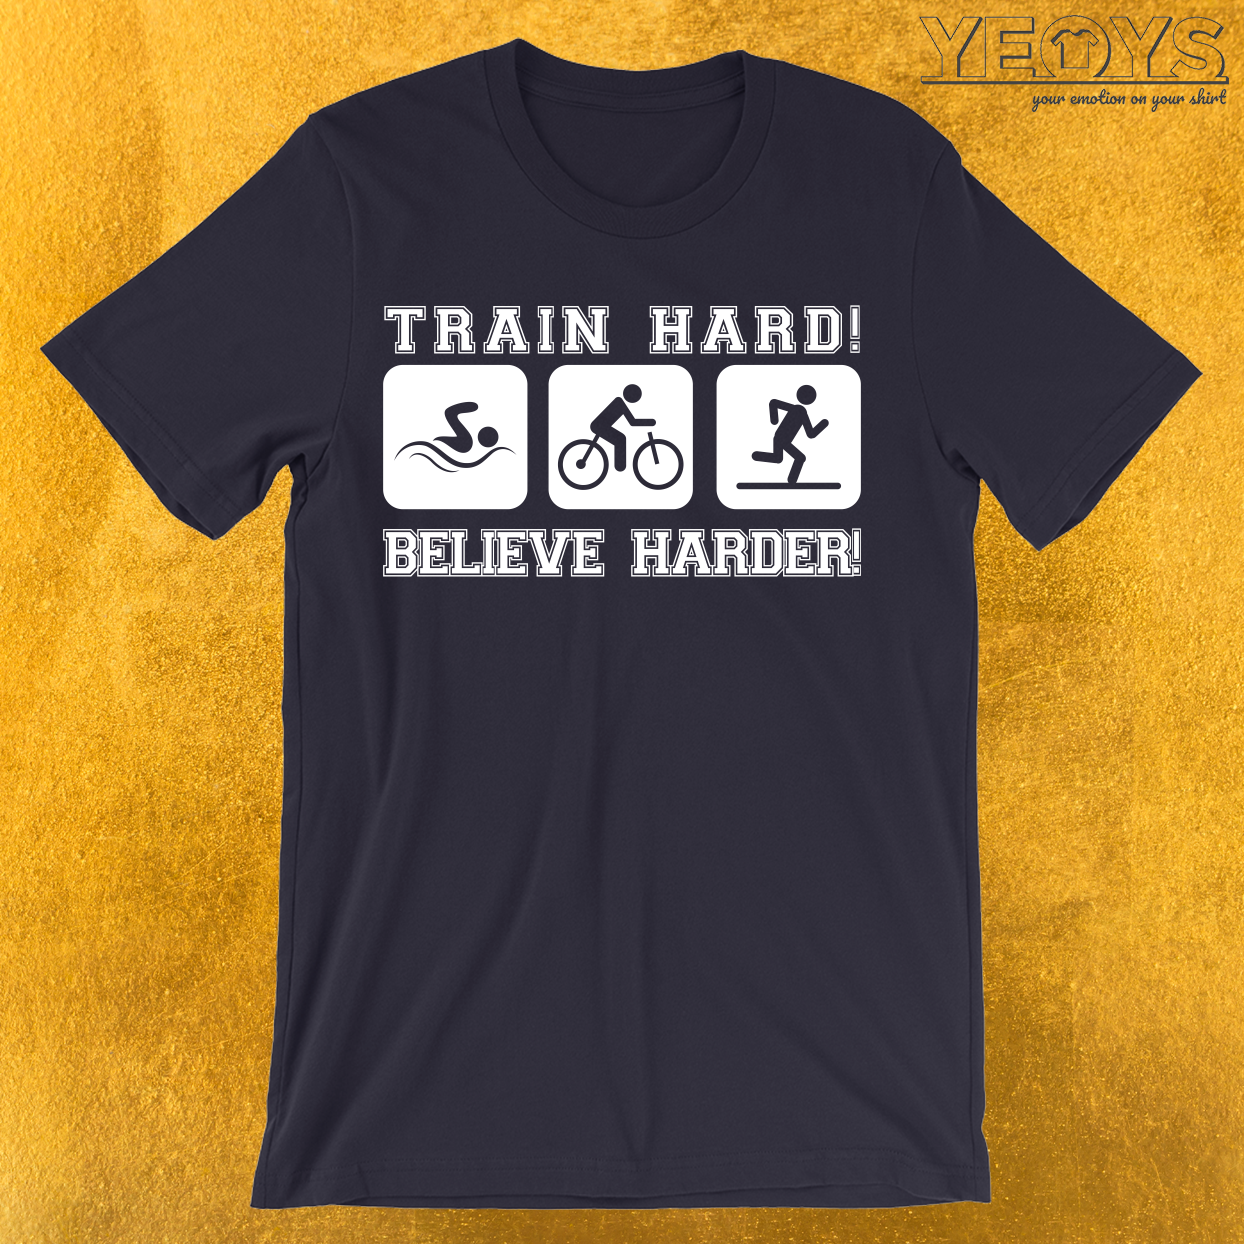 Triathlon Train Hard T-Shirt